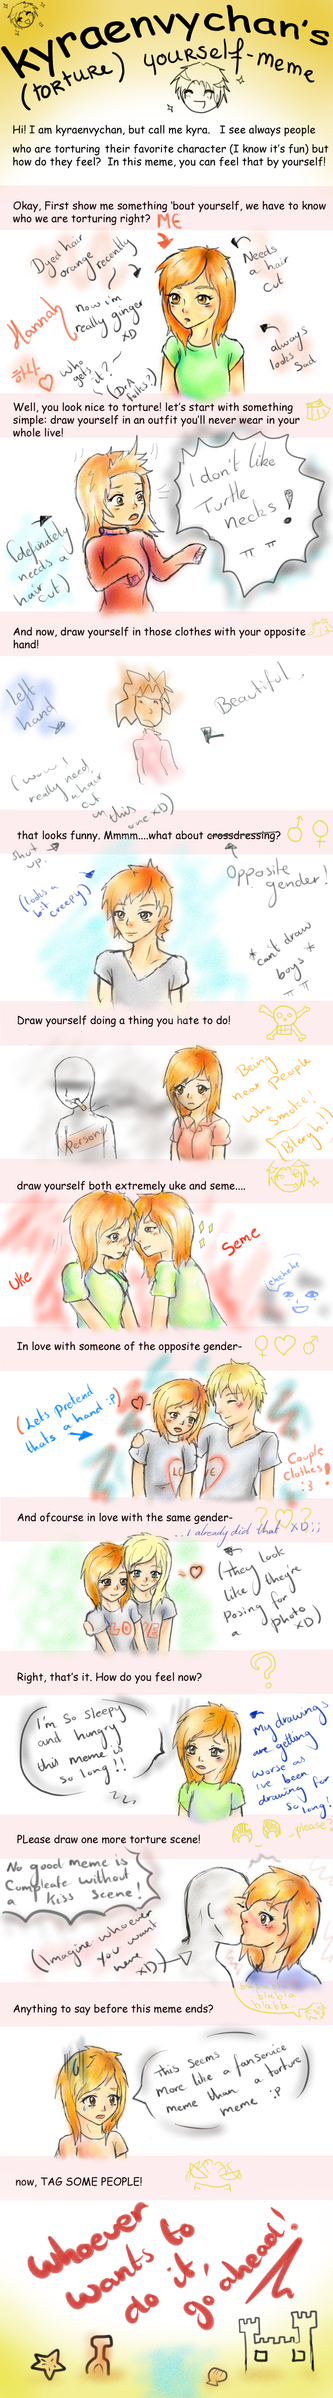 'Torture' yourself meme (Or Fansevice? ) by Mango-Kimchi